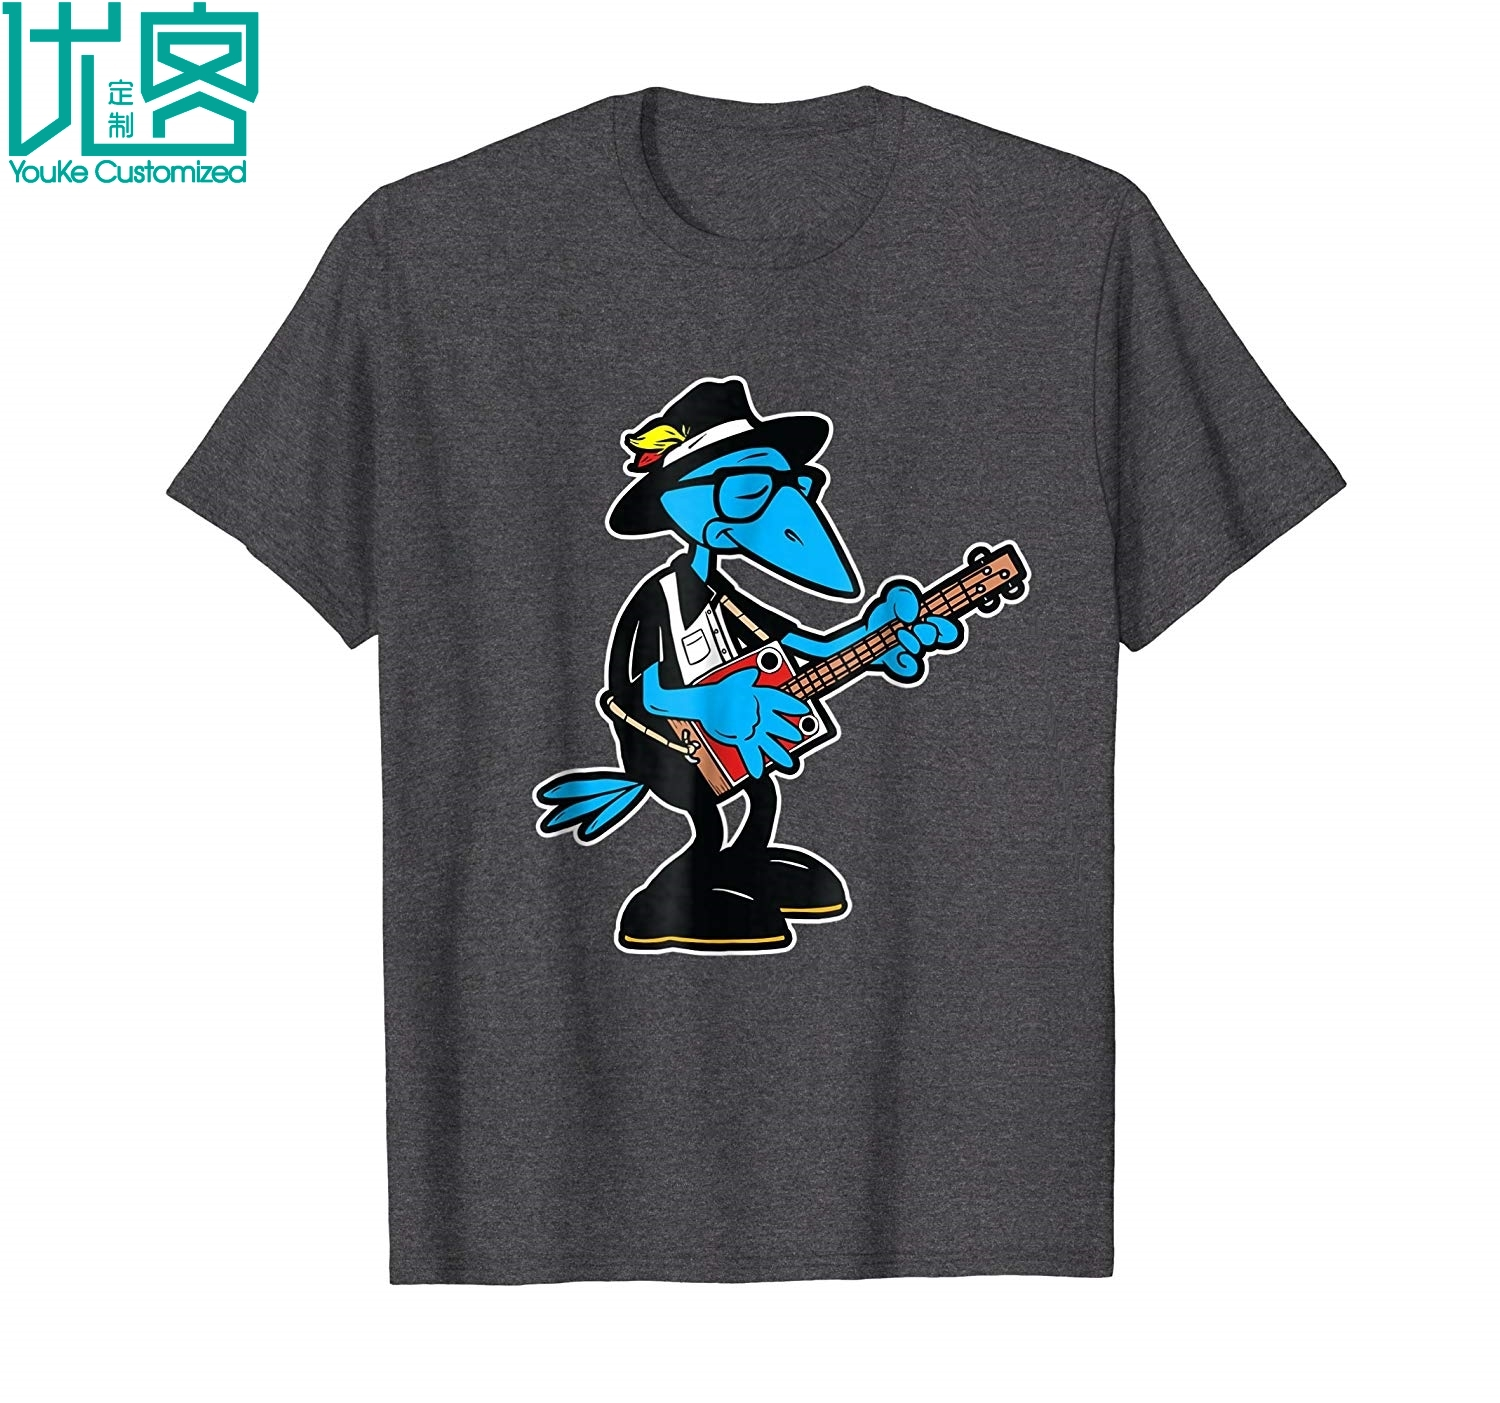 Southern Music T Shirts Cartoon Crow Blues Guitarist Shirt 2019 Summer Men's Short Sleeve T-Shirt image